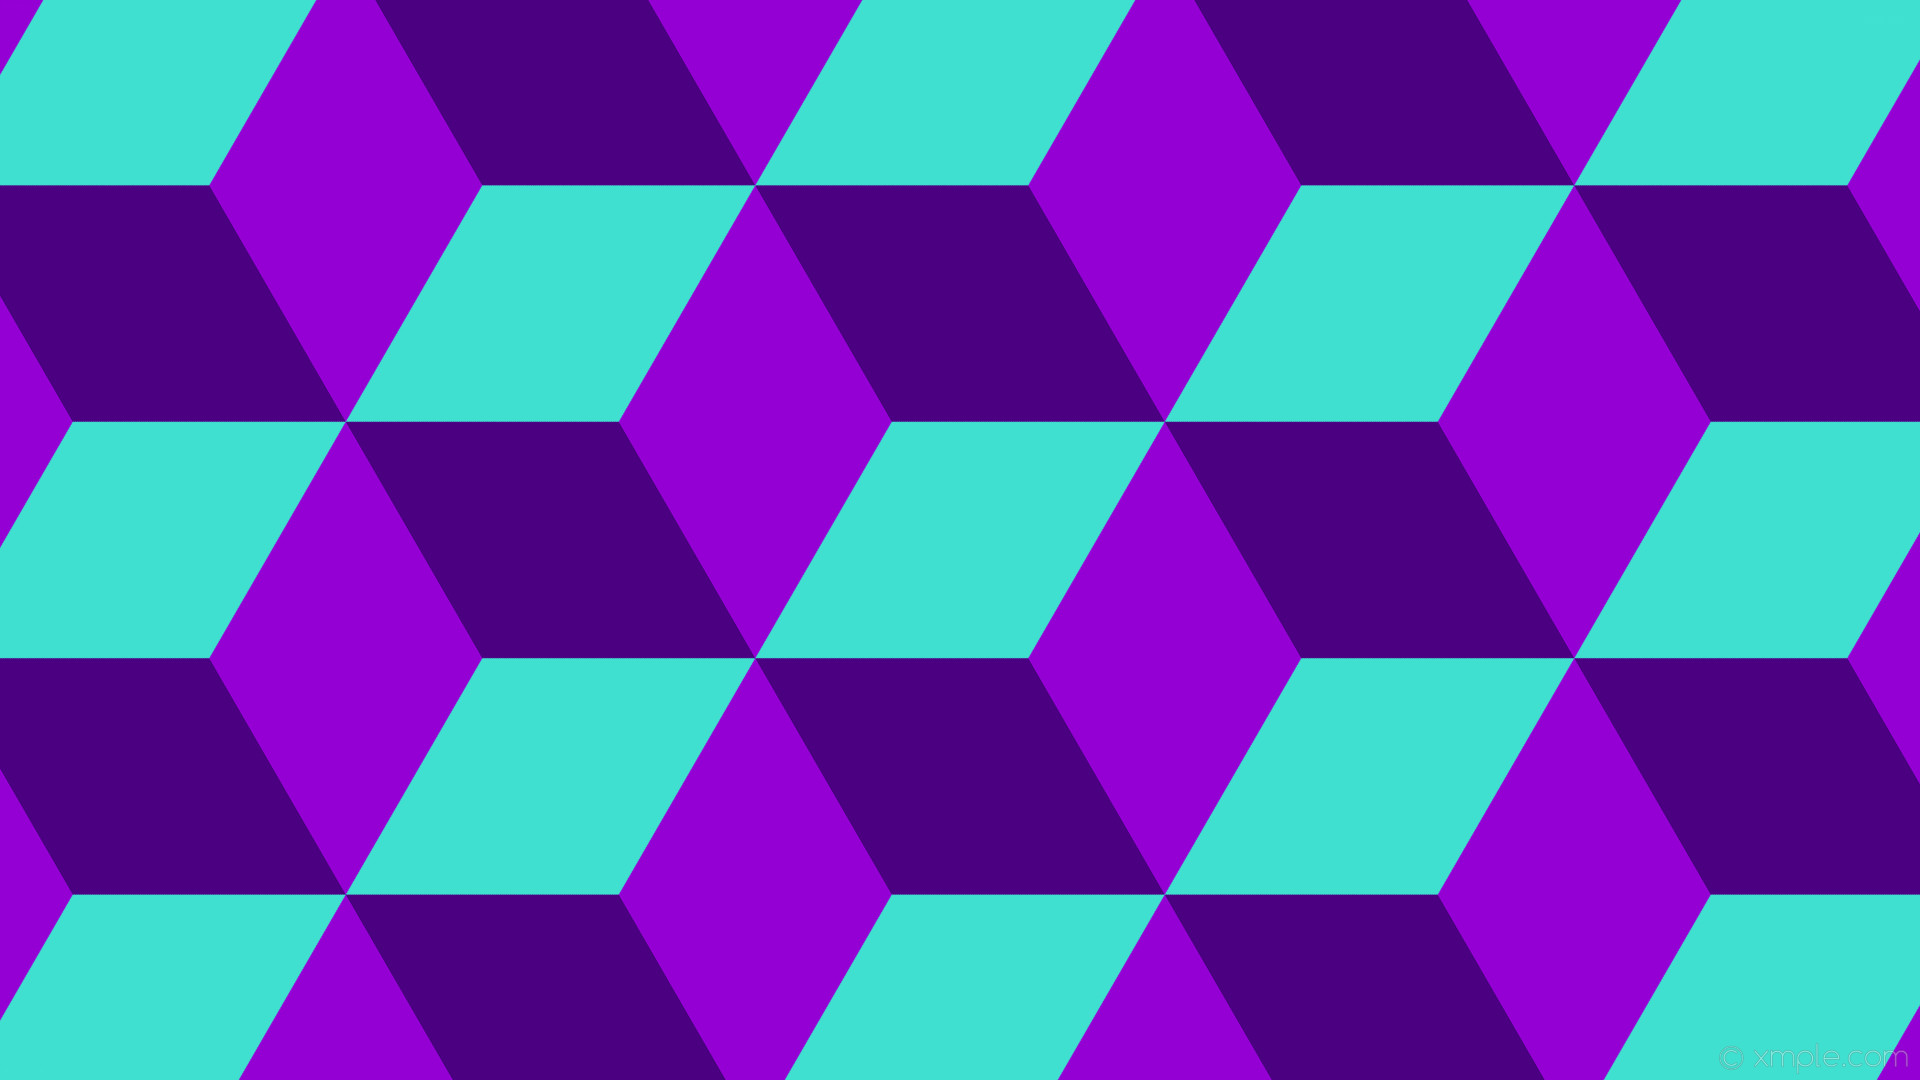 Purple and Turquoise Wallpaper 88 images